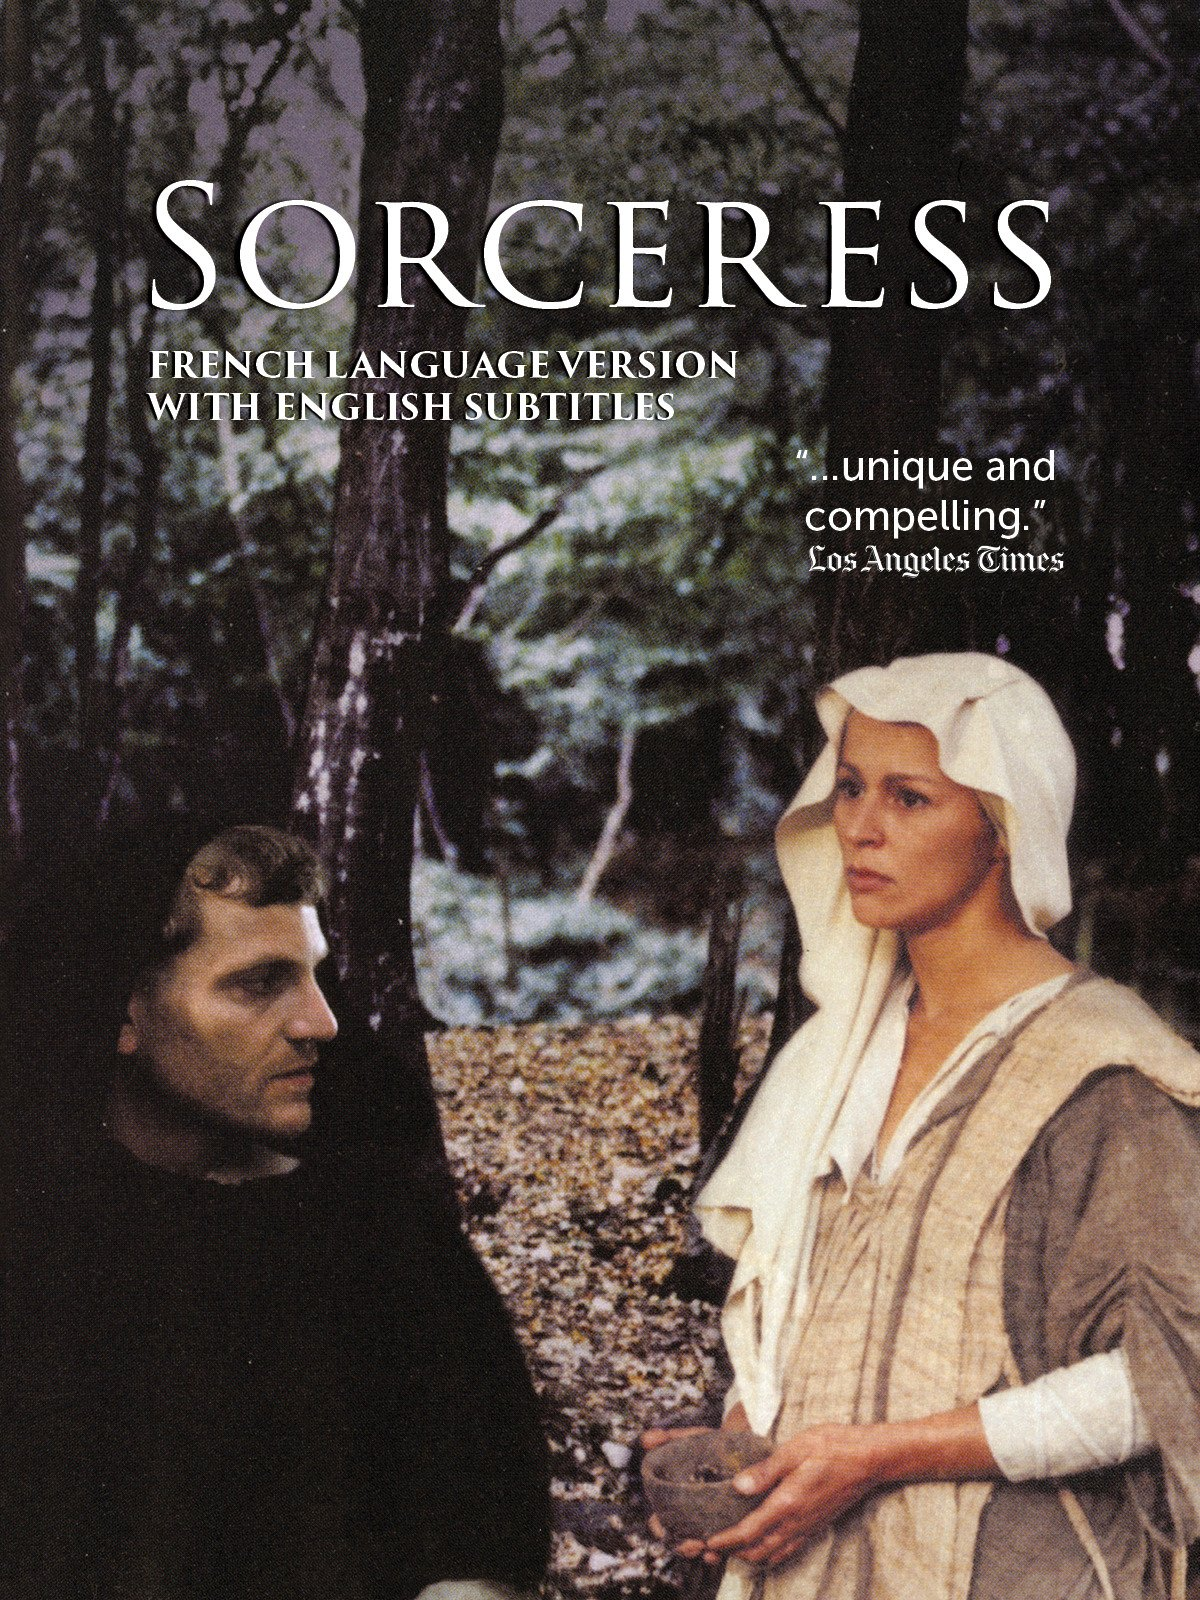 Sorceress [French Version with English Subtitles] on Amazon Prime Video UK